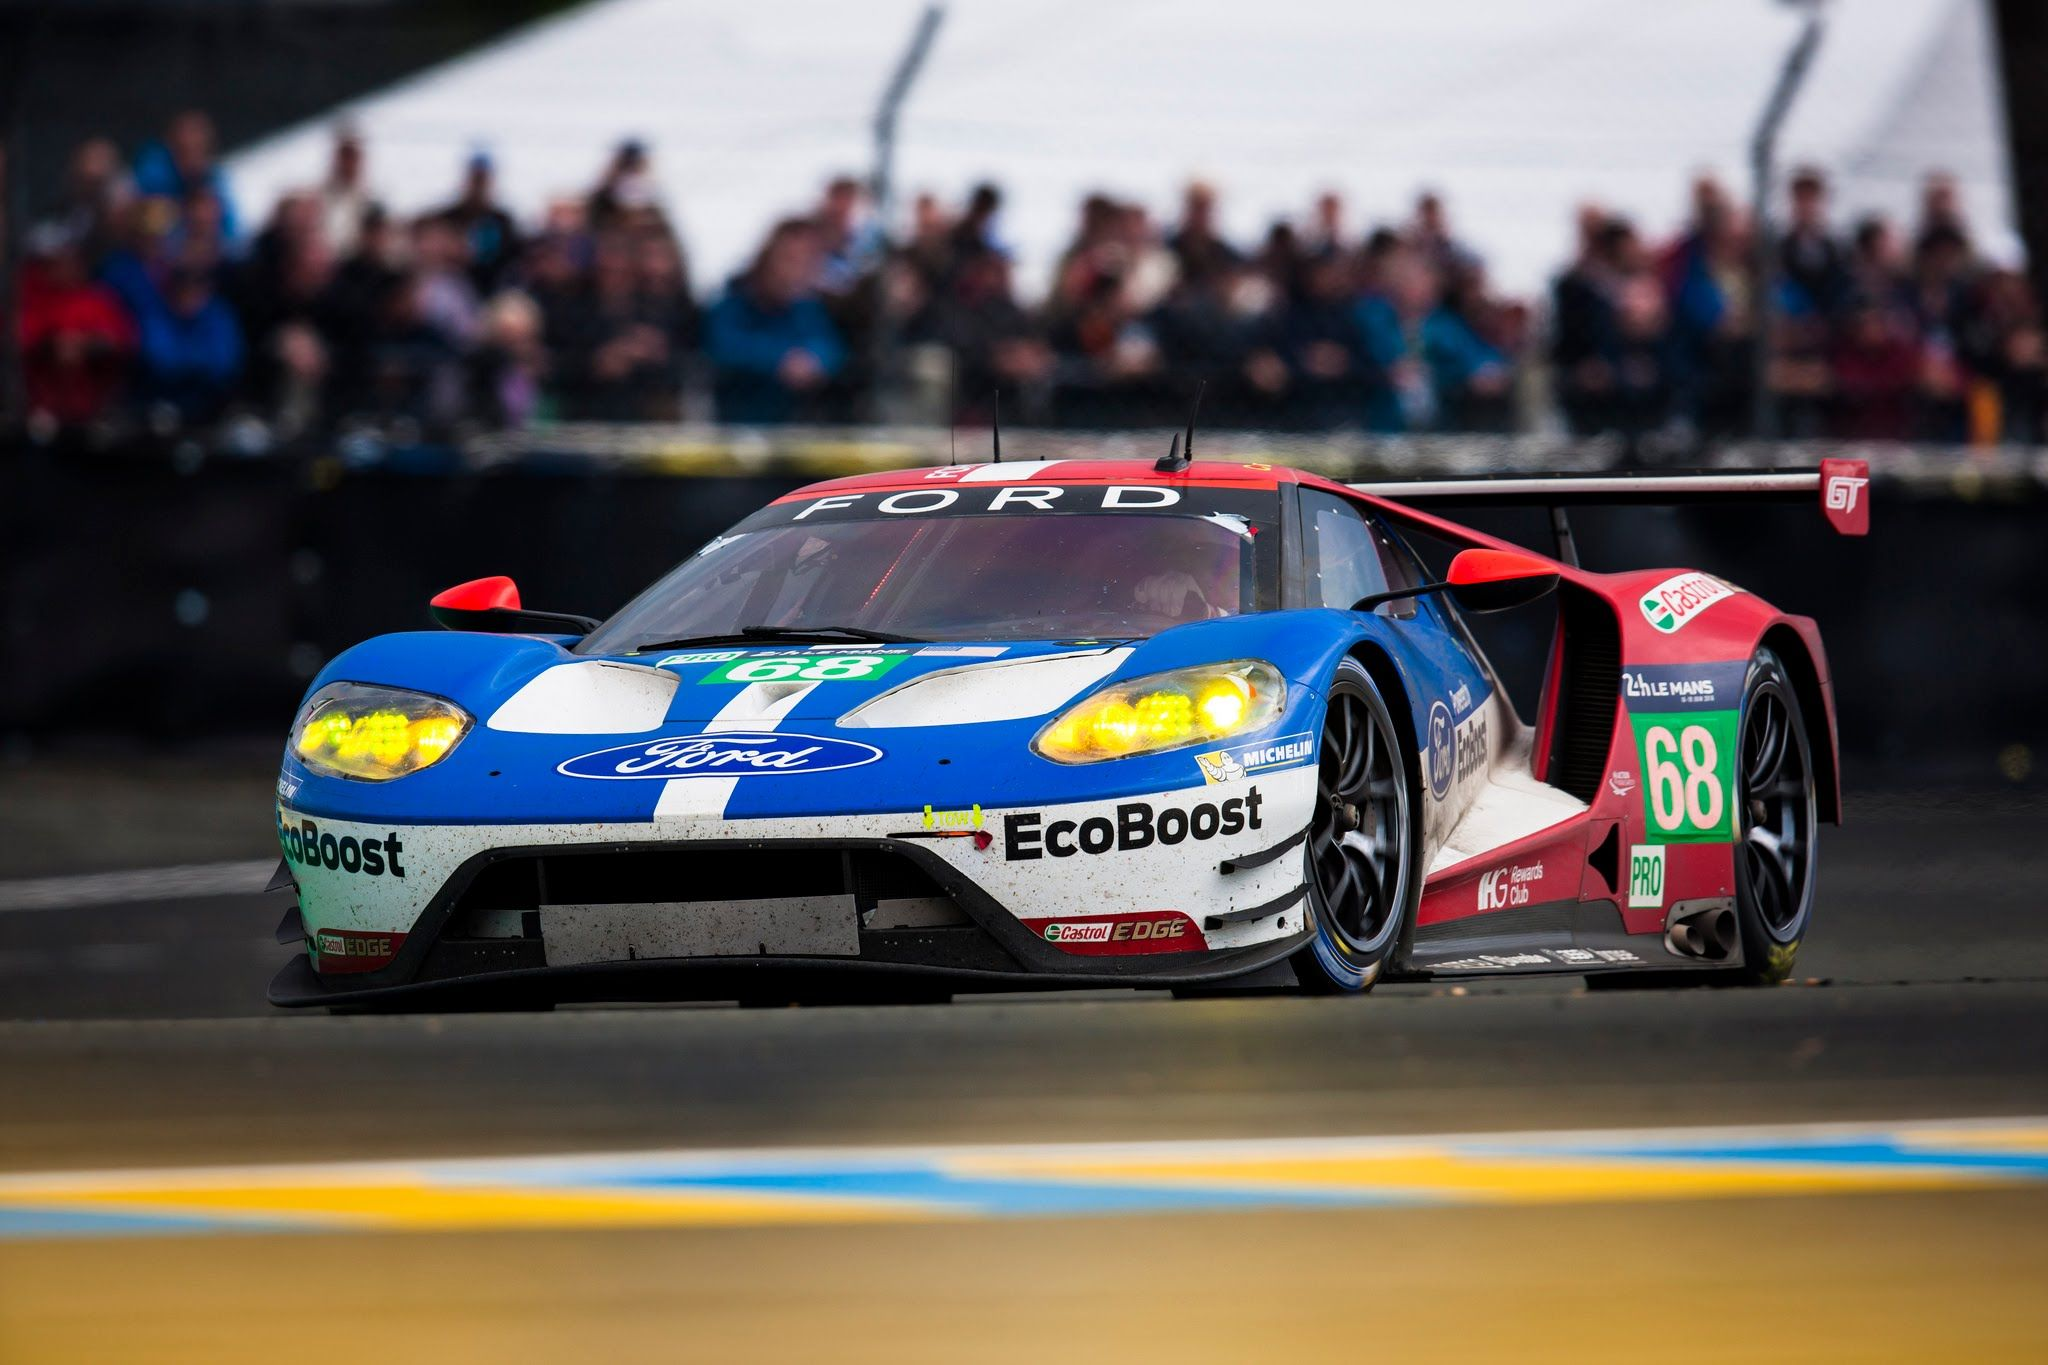 Incredible 360 Degree Vr Lap Of Le Mans In Winning Fordgt 68